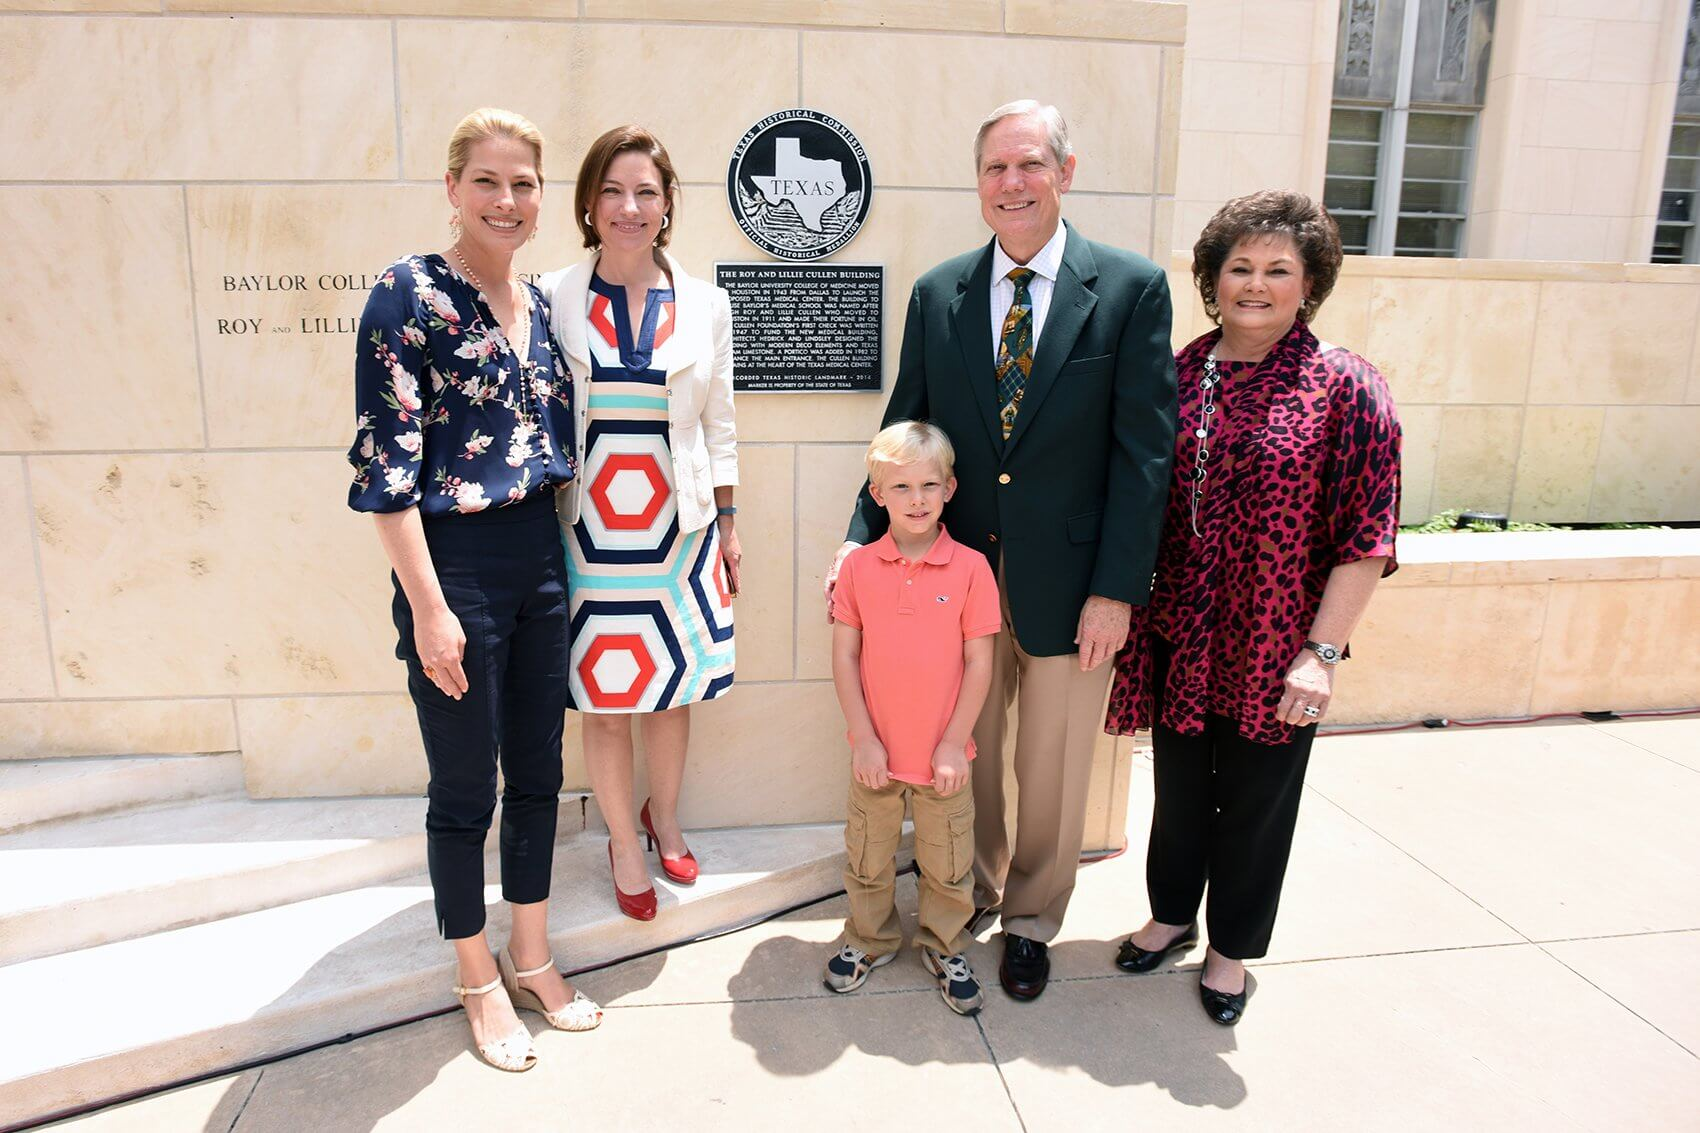 The Cullen family unveils the marker. From left to right: Christine Morenz, Cullen Geiselman, Shea Morenz, Corbin Robertson Jr. and Barbara Robertson.